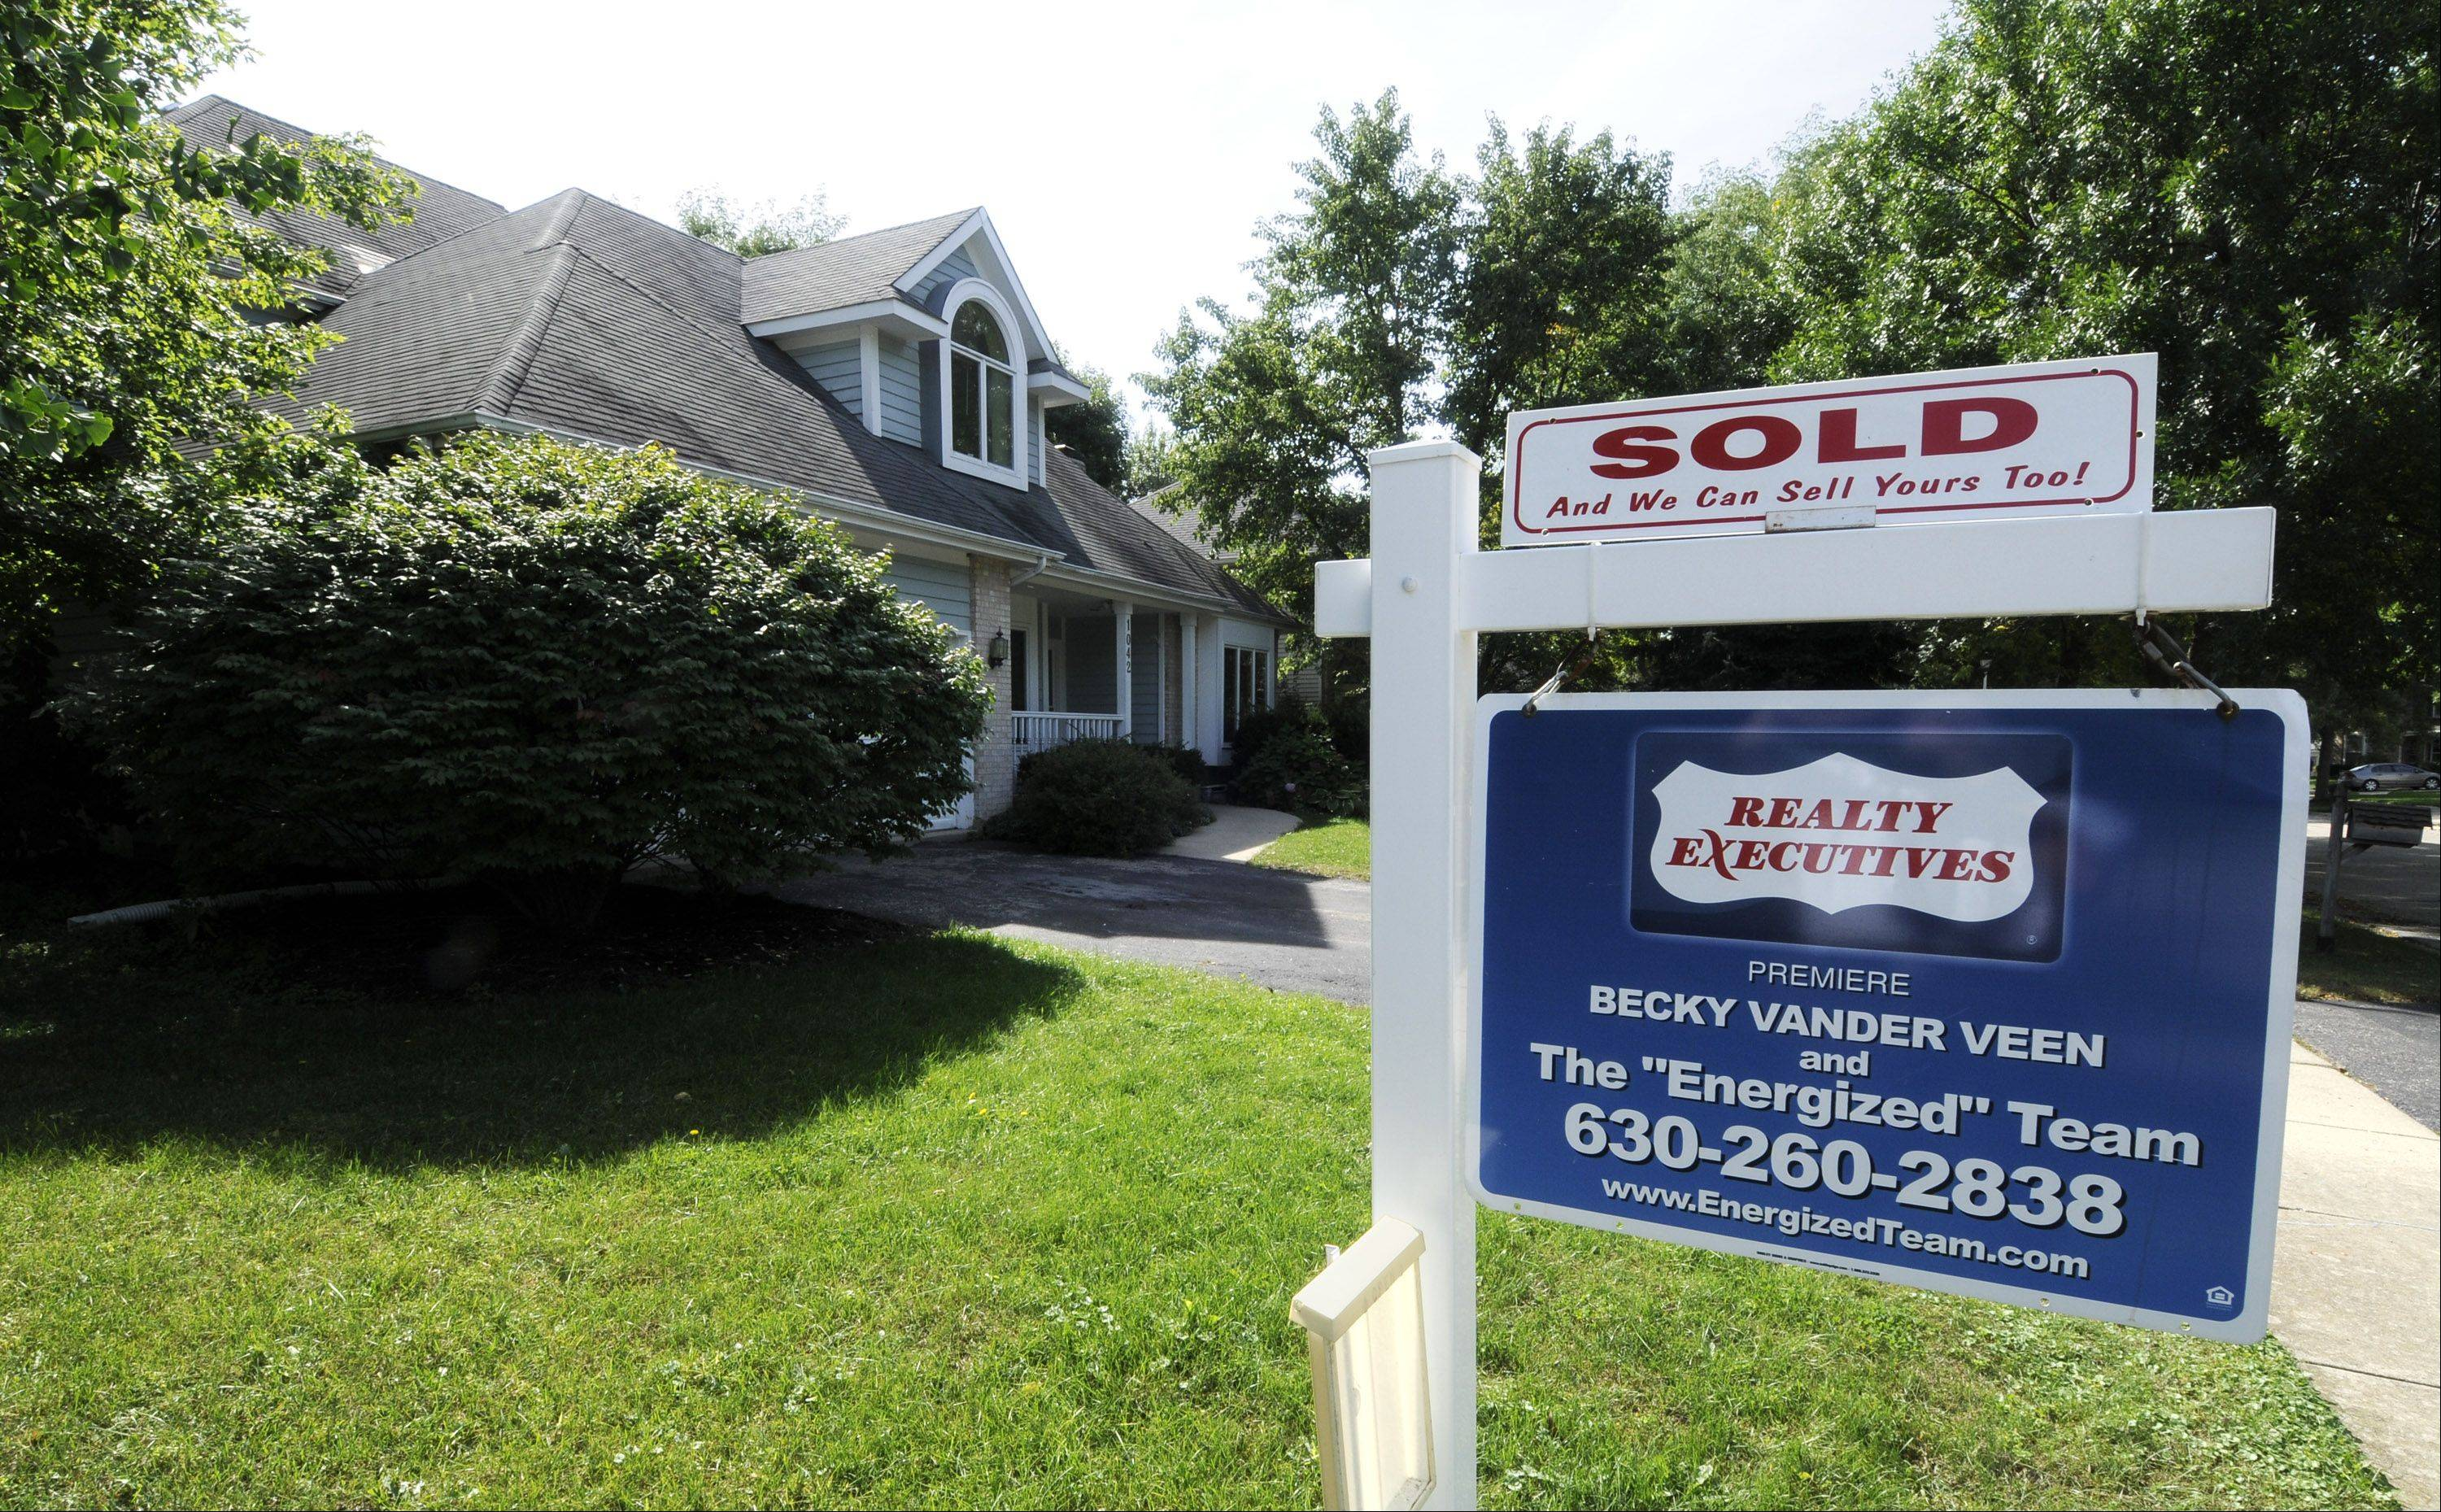 This Wheaton home is part of a spike in sales in DuPage County. In August, DuPage County saw 893 homes being sold, compared to 655 in August 2010, an increase of 36 percent.